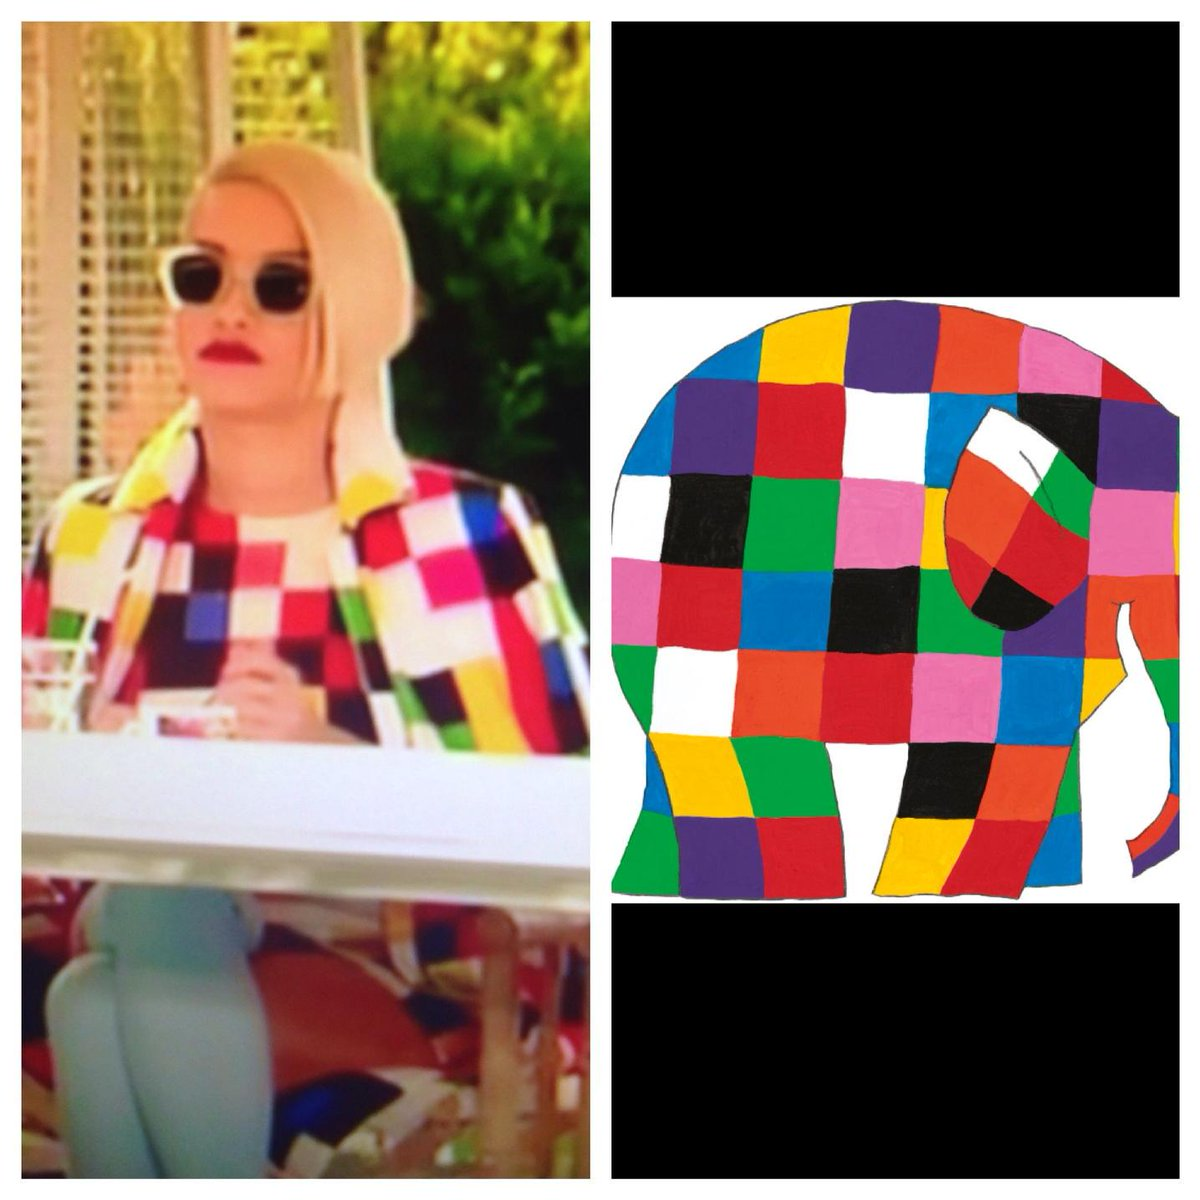 Is it just me or does Rita Ora look like Elmer? #Xfactor http://t.co/J6sDxfBj2C